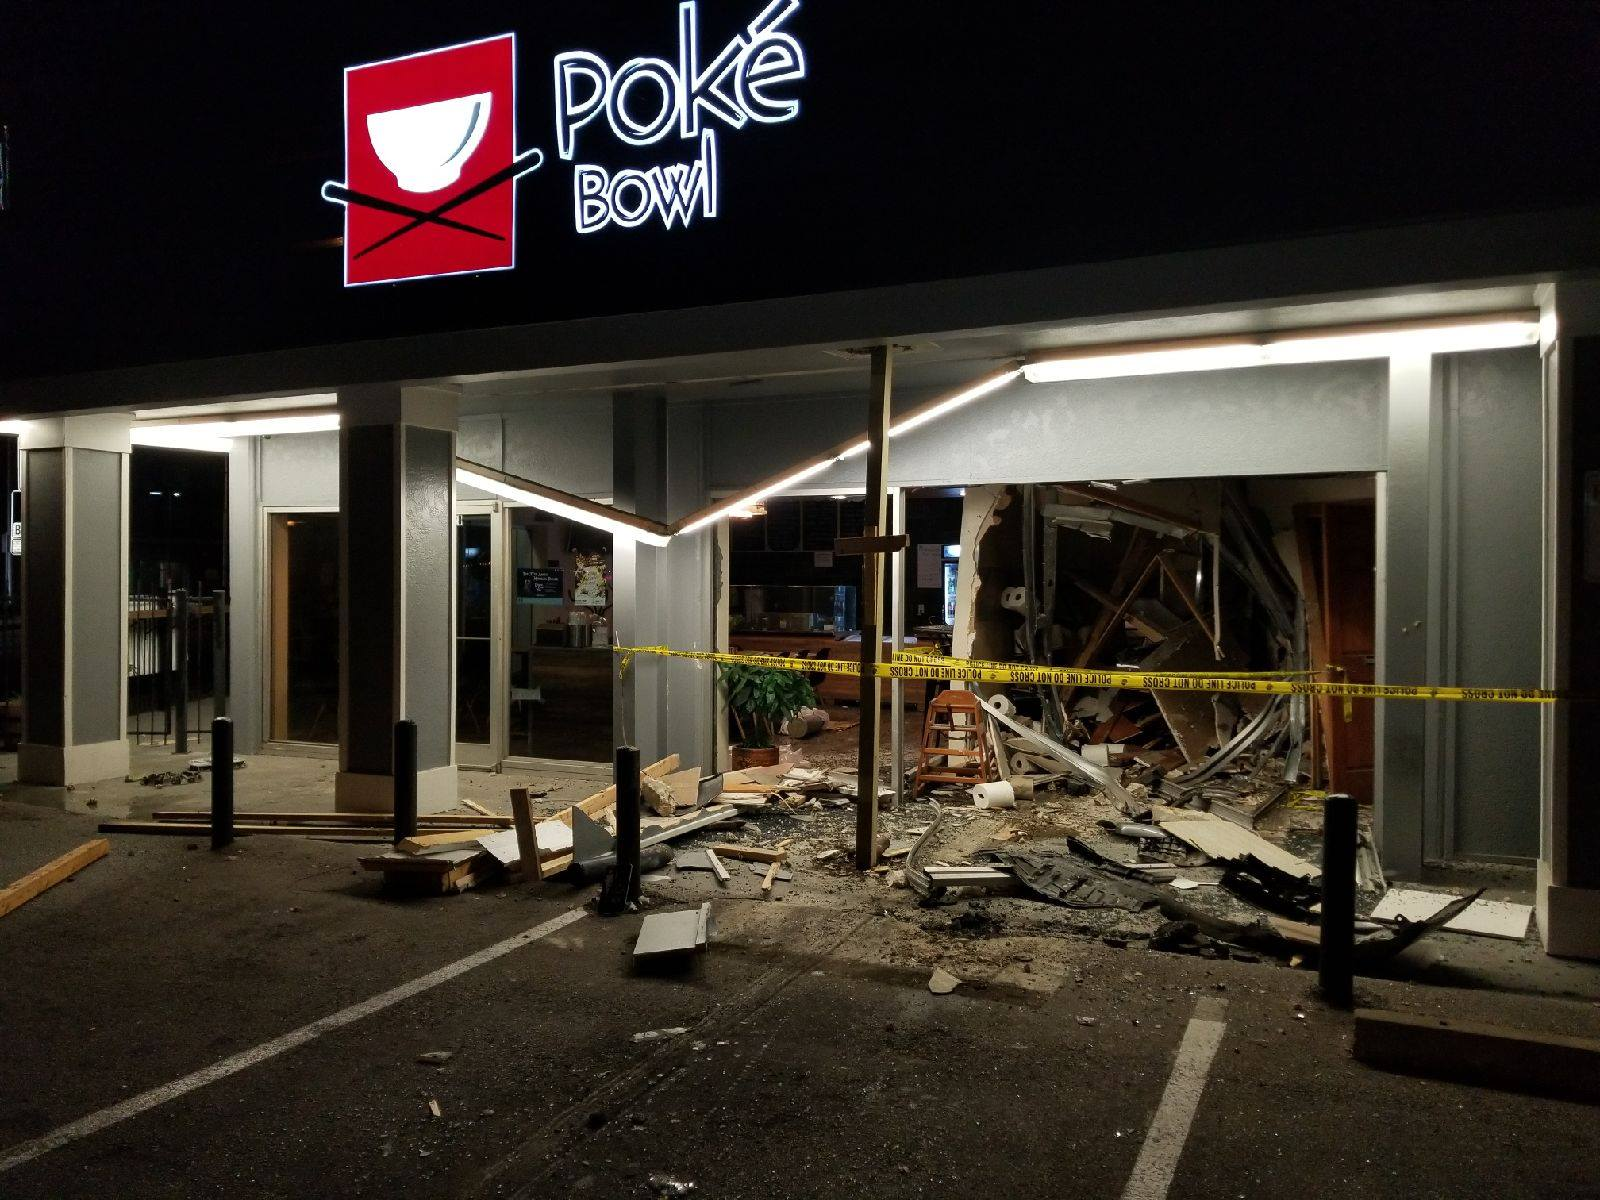 A UT student is accused of driving drunk and crashing her car into the Poke Bowl restaurant near campus. (Photo credit: Poke Bowl Team)